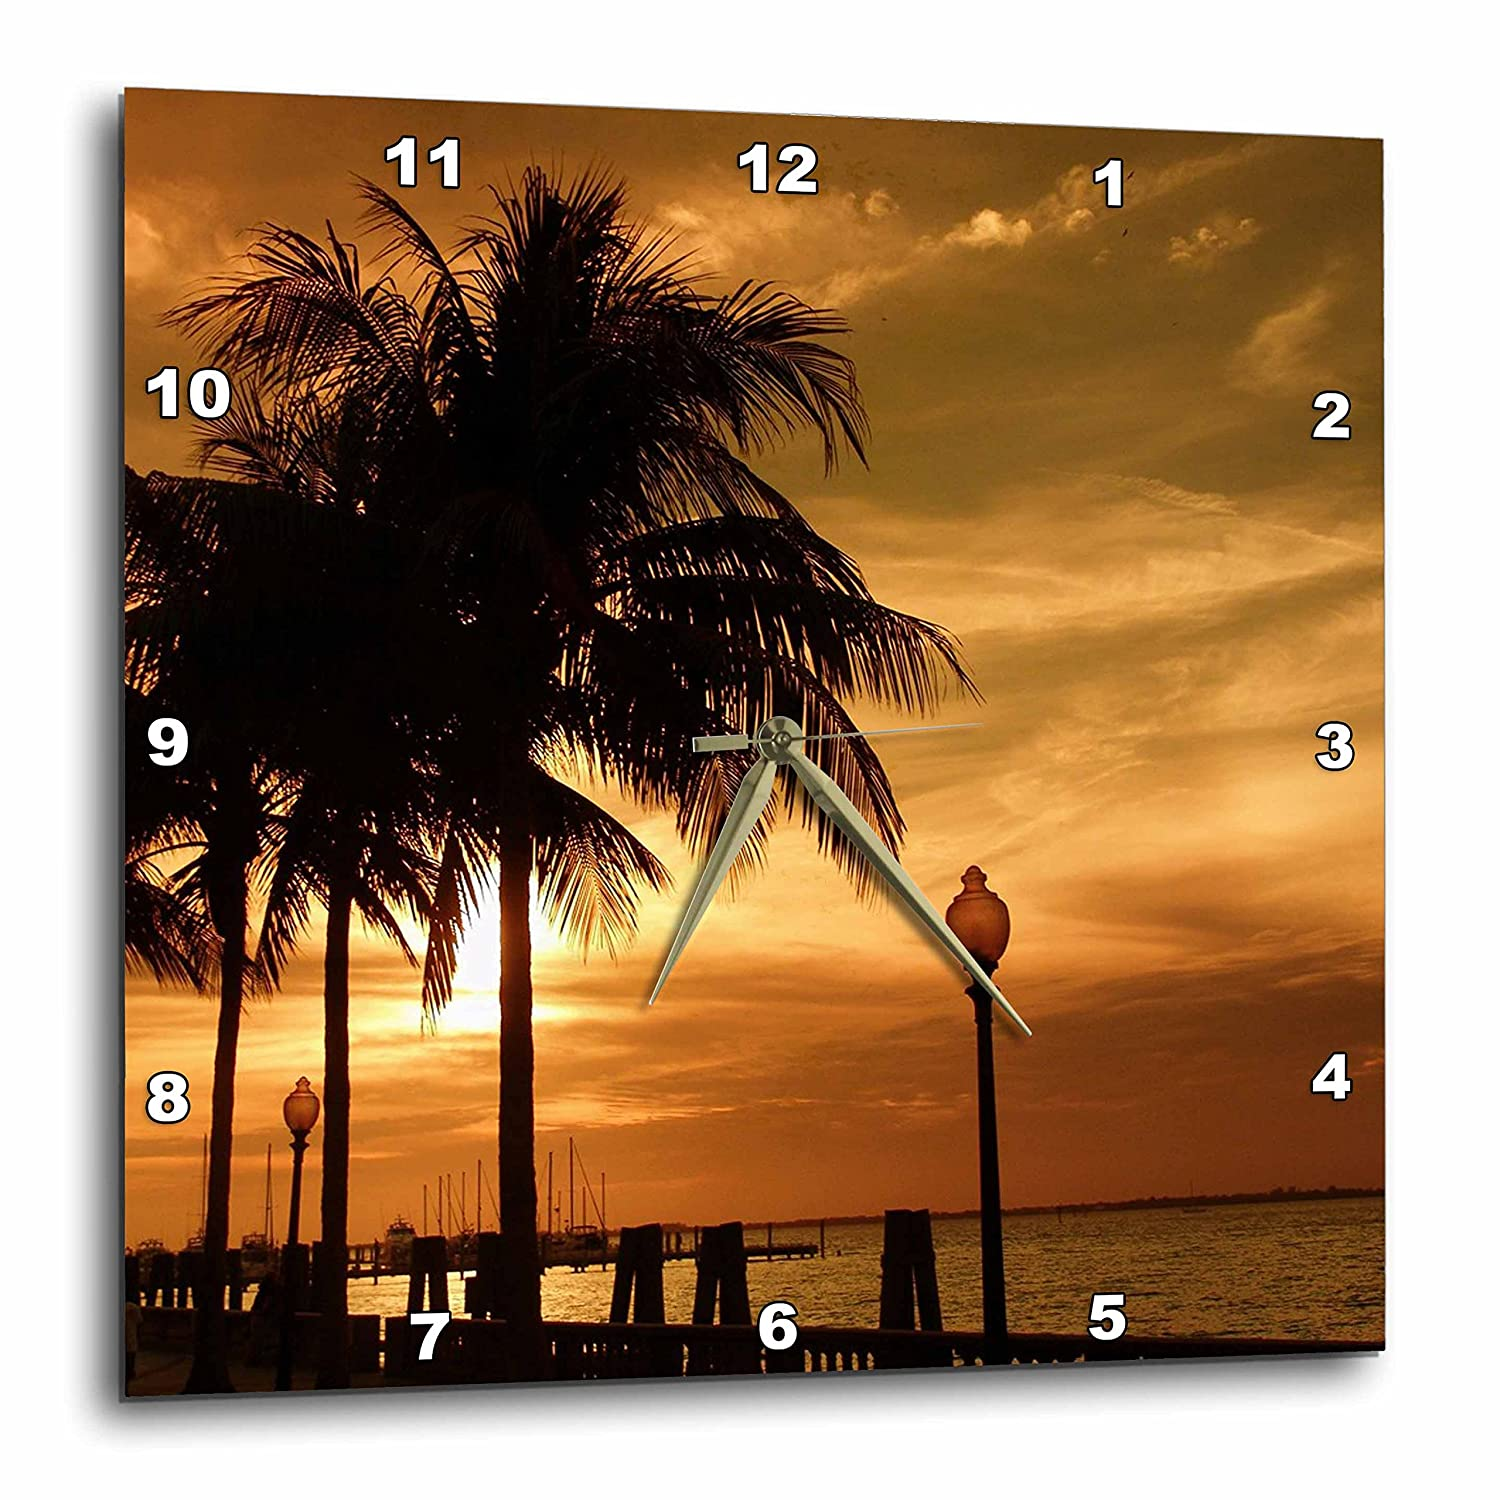 3dRose dpp/_16855/_1 Wall Clock Tropical Copper 10 by 10-Inch 3D Rose